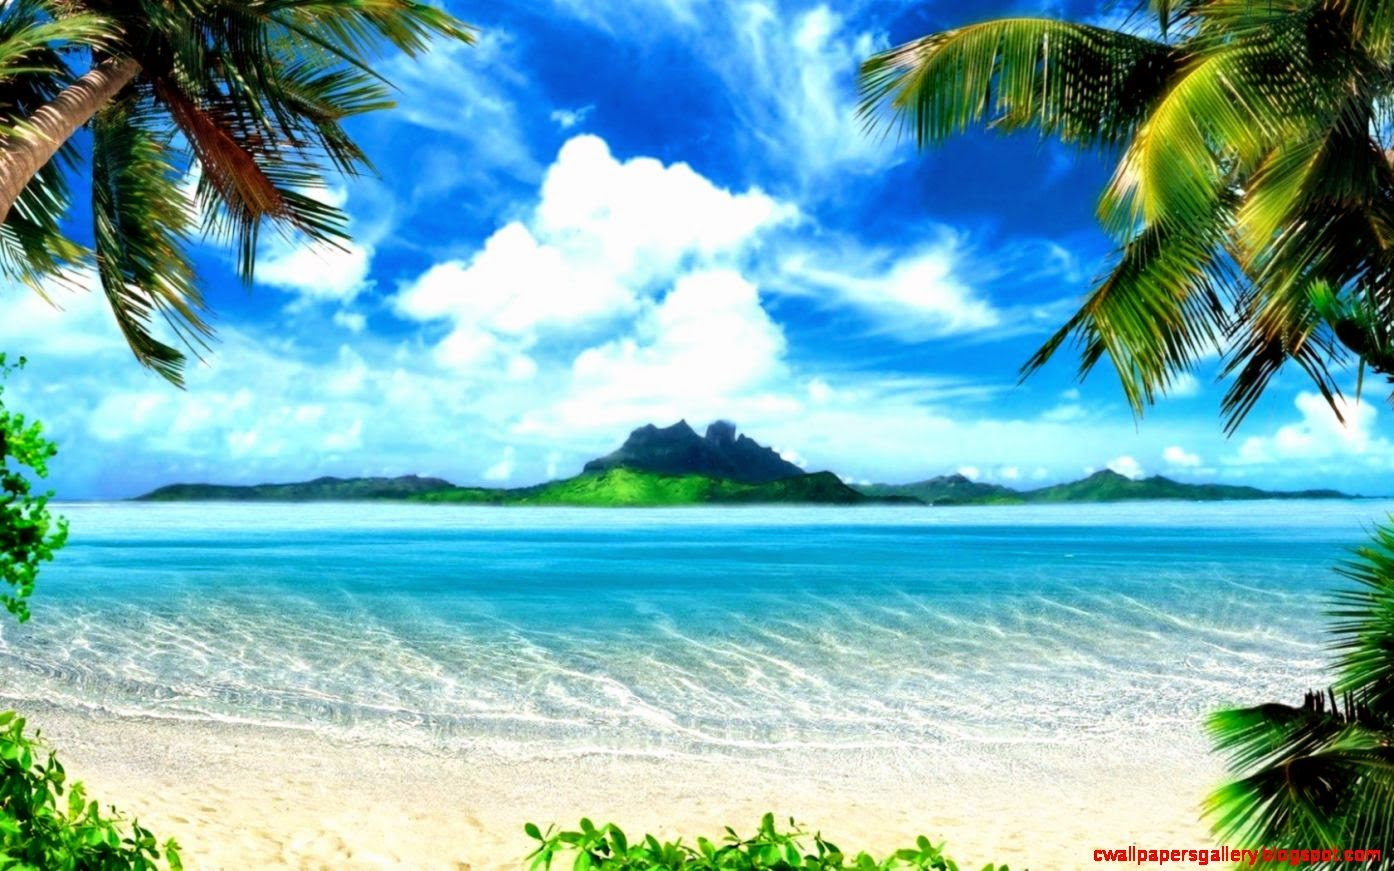 Tropical Island Paradise Wallpaper Wallpapers Gallery 1394x871